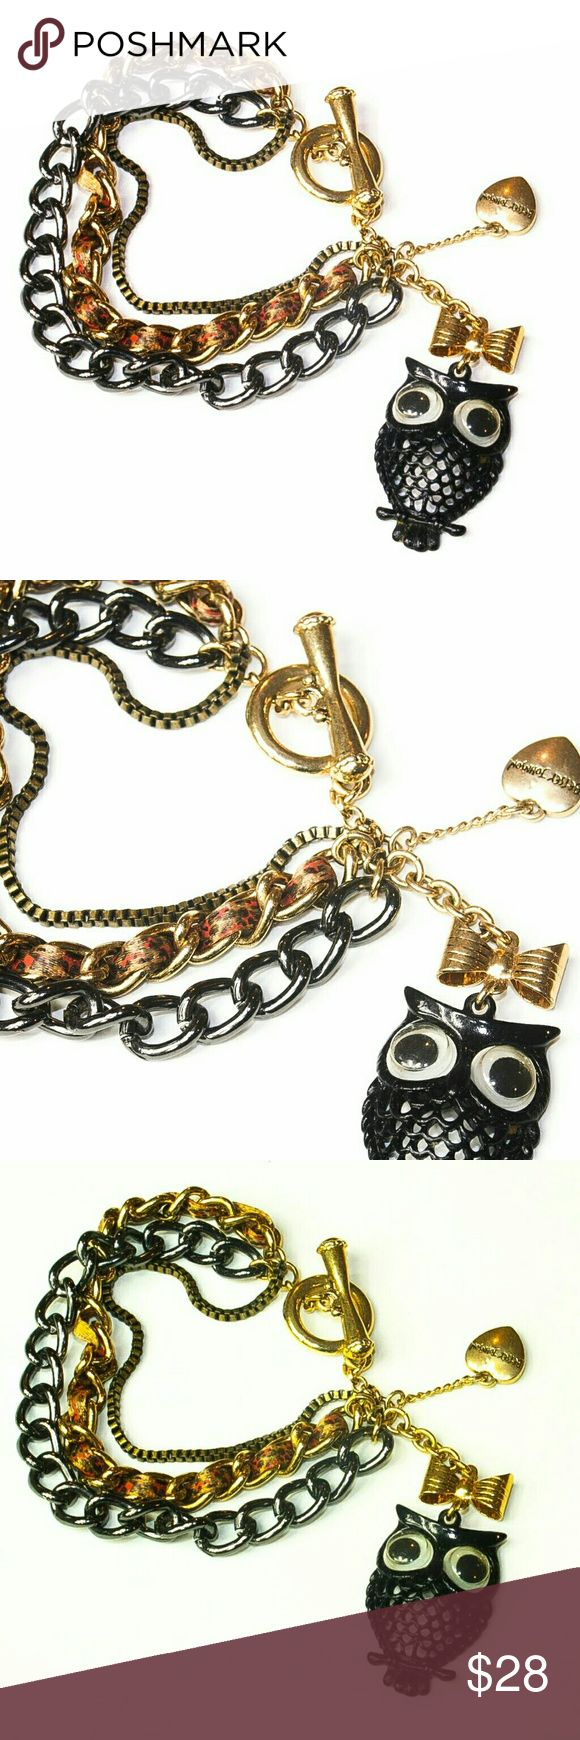 """Betsey Johnson Owl Bracelet Betsey Johnson Owl Bracelet.  3 styles of chain. Gold tone toggle closure.  Black owl charm is about 1.25"""" tall, and .75"""" wide. Fun piece.  Used item: any wear shown in pics.  Fantastic condition! Betsey Johnson Jewelry Bracelets"""